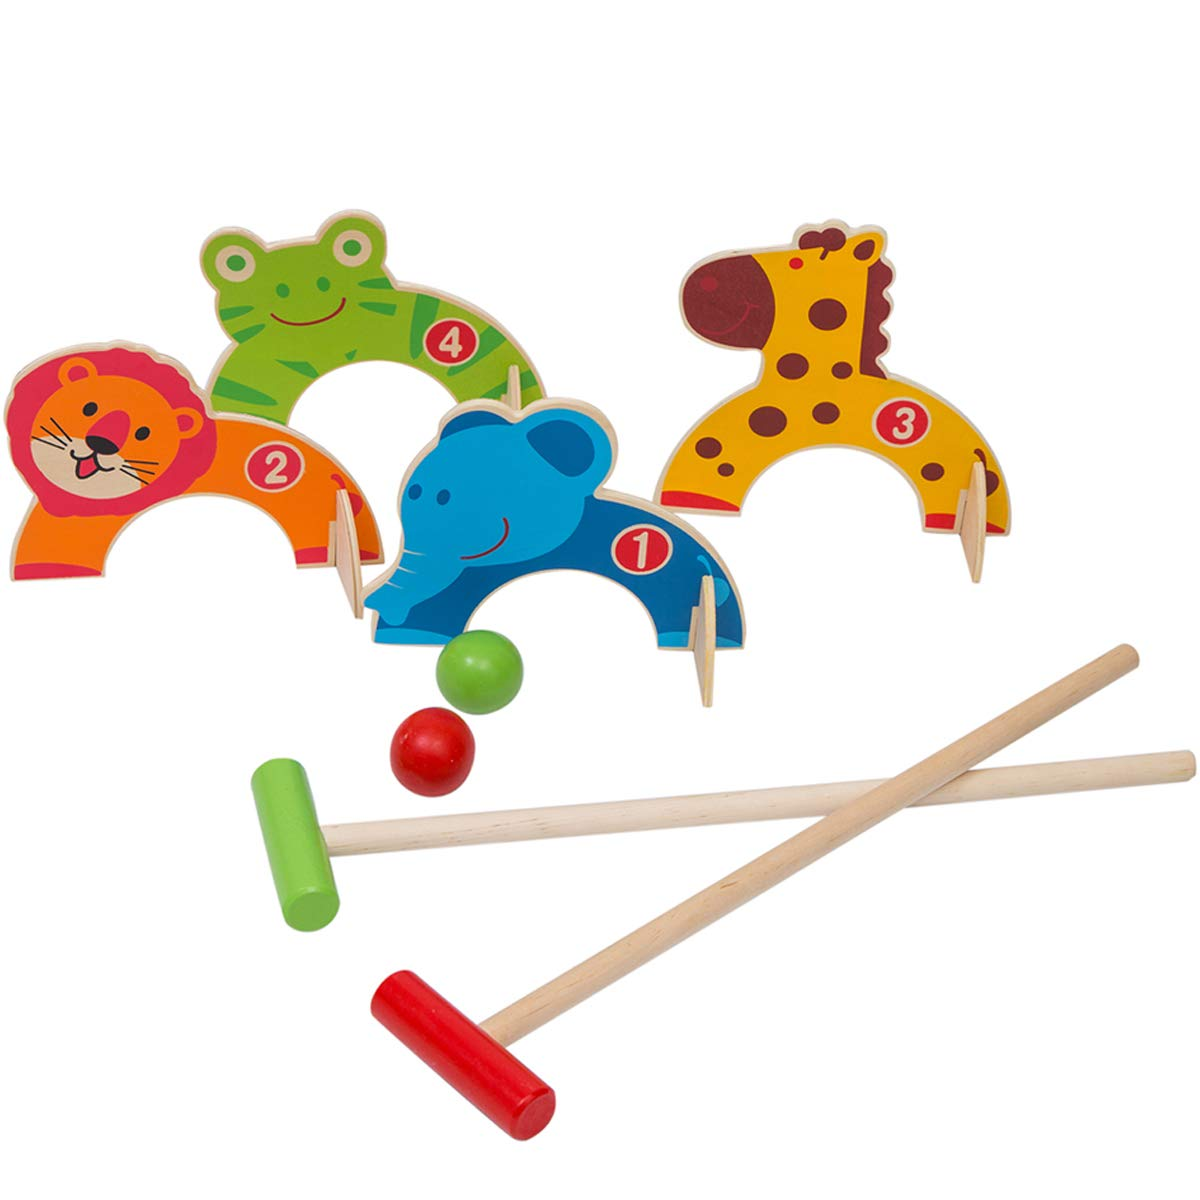 Wondertoys Wooden Animals Croquet Set Golf Toys Early Educational Game for Children